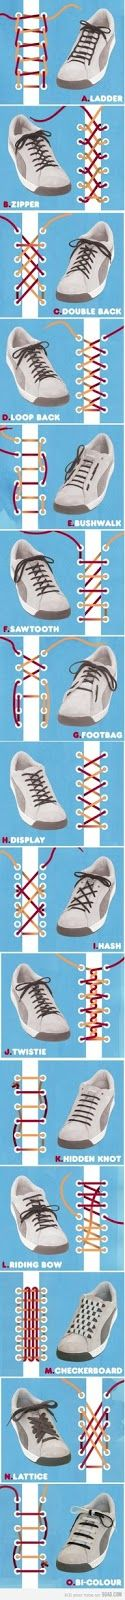 See more Different styles of inserting laces in shoes